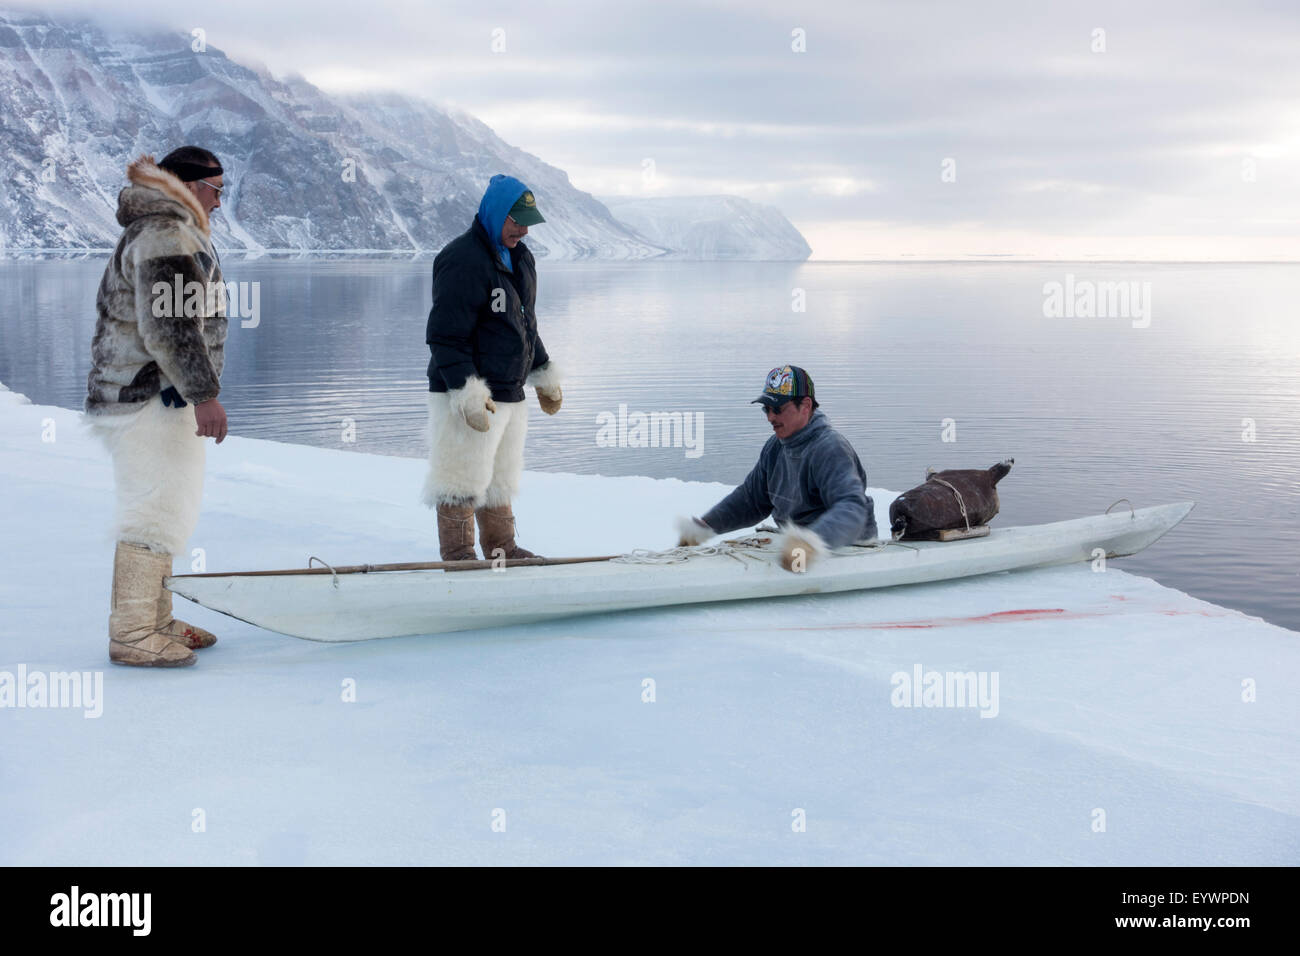 a study on the inuit people living in coastal greenland Beneath were the world's most northerly people, living in a quite  up the west  greenland coast with nothing to see but bare ancient rock,  at the scott polar  research institute and research fellow at trinity hall, cambridge.